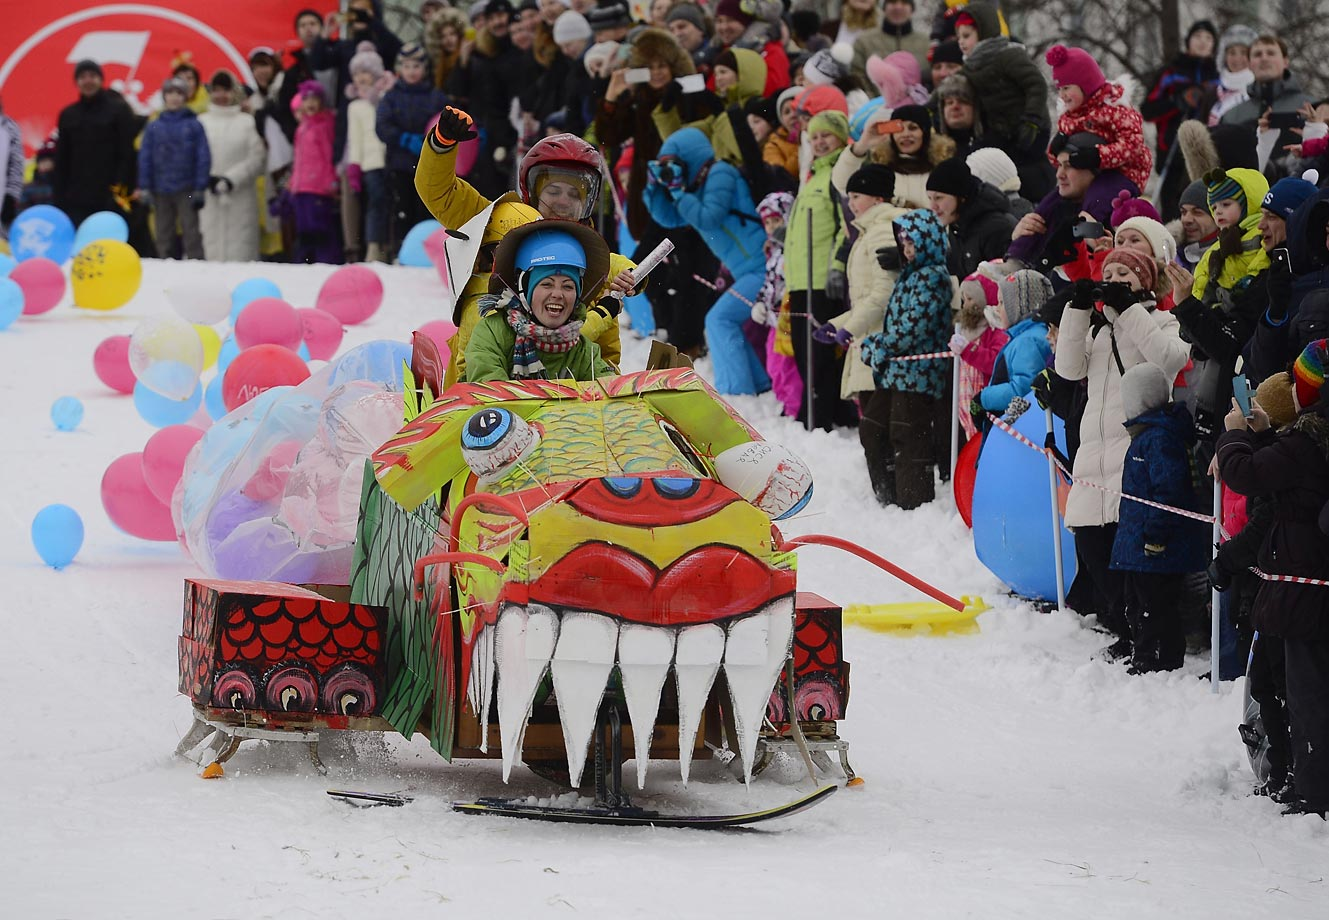 People sledging during Winter SaniDay 2015 in Moscow.